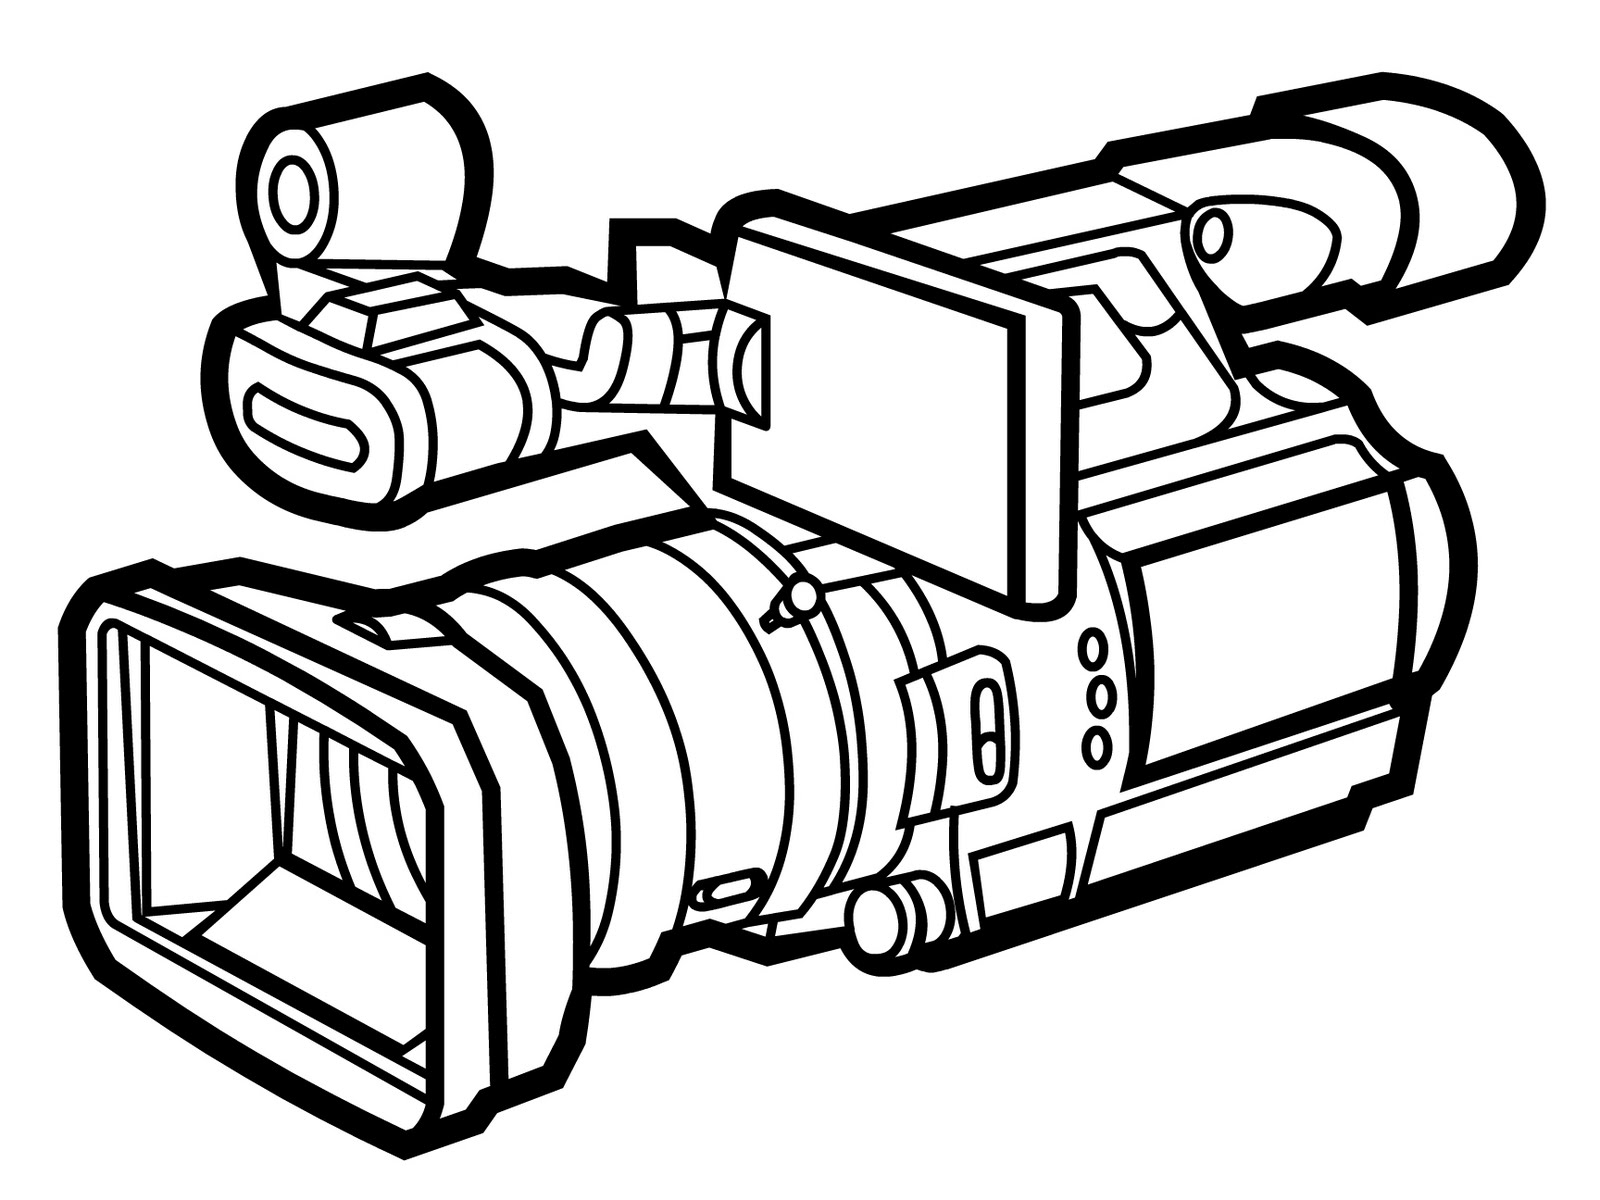 Video camera logo clipart image freeuse download Video camera logo clipart - ClipartFest image freeuse download